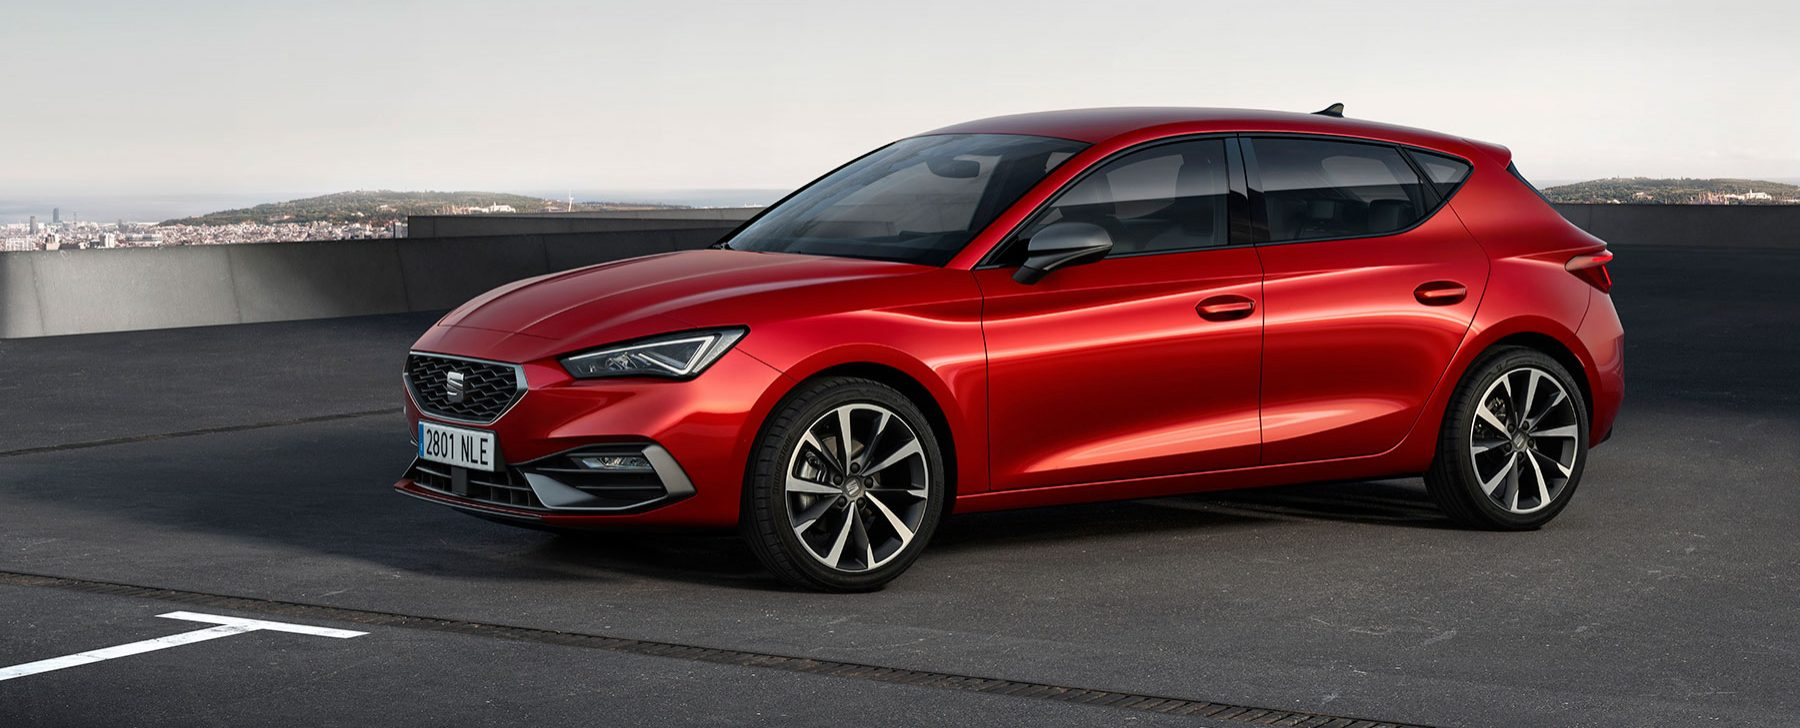 SEAT-launches-the-all-new-SEAT-Leon_02_HQ-1800x728.jpg